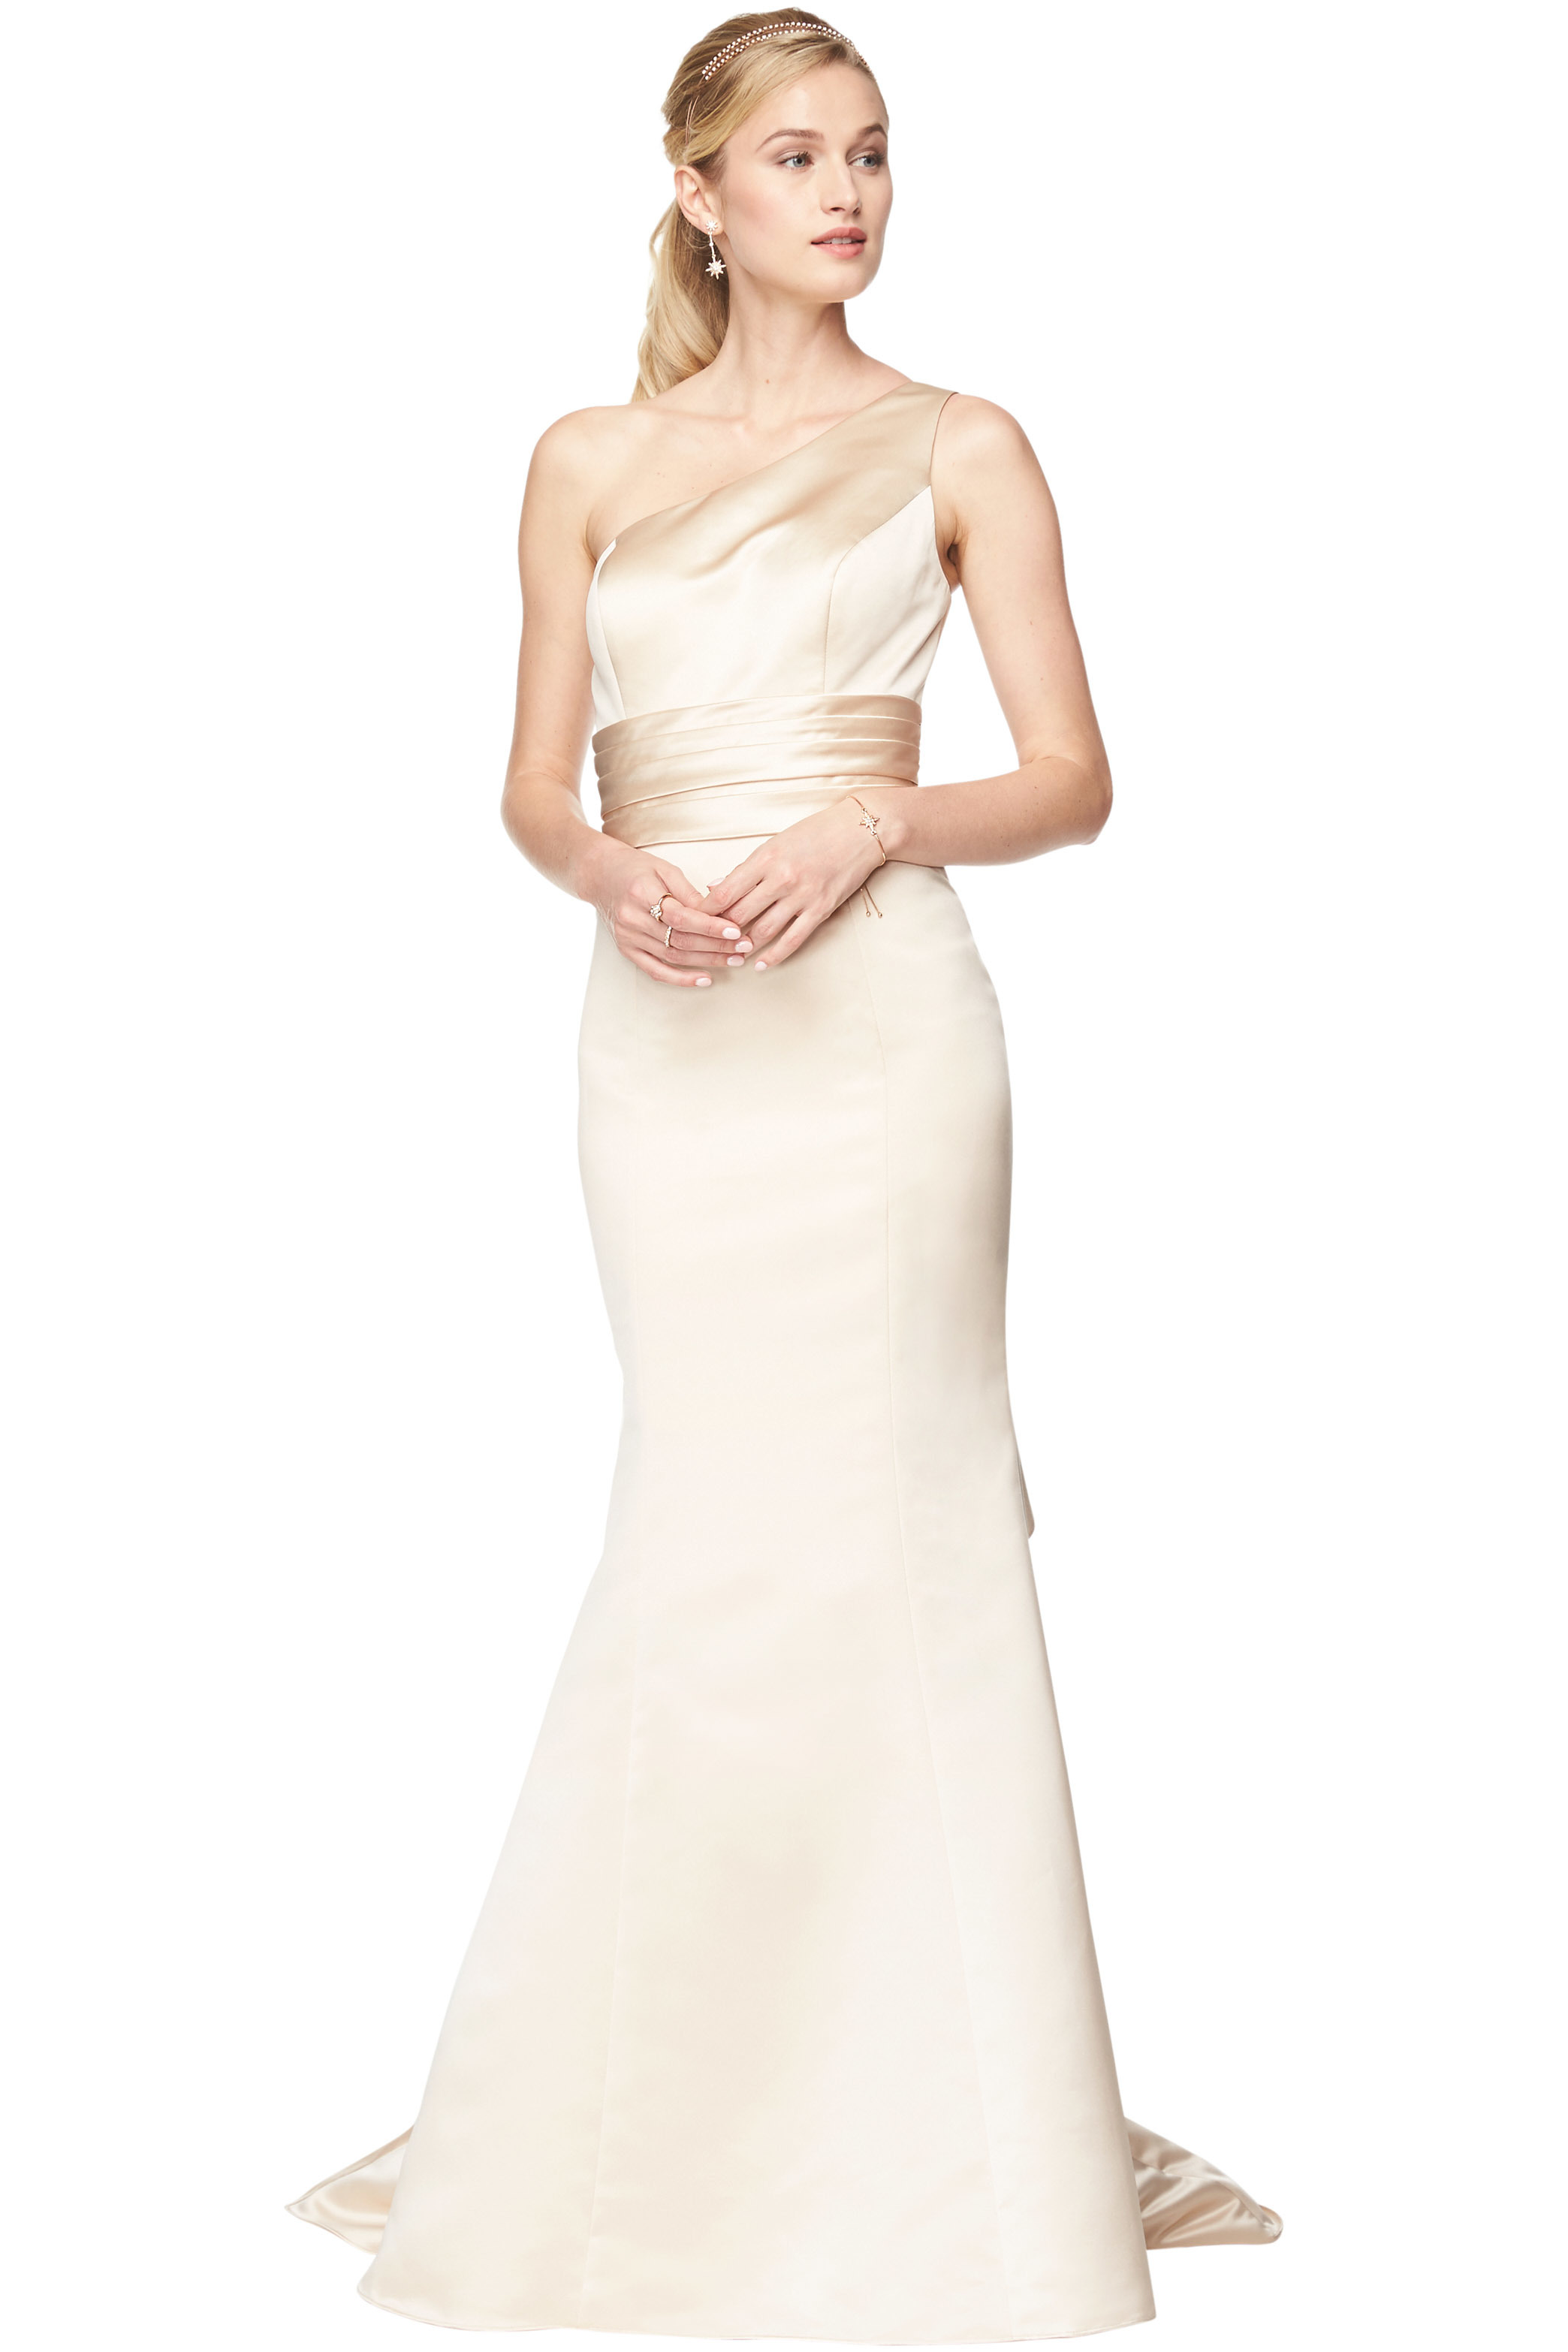 Bill Levkoff EURO CHAMPAGNE Euro Satin One Shoulder A-Line gown, $210.00 Front